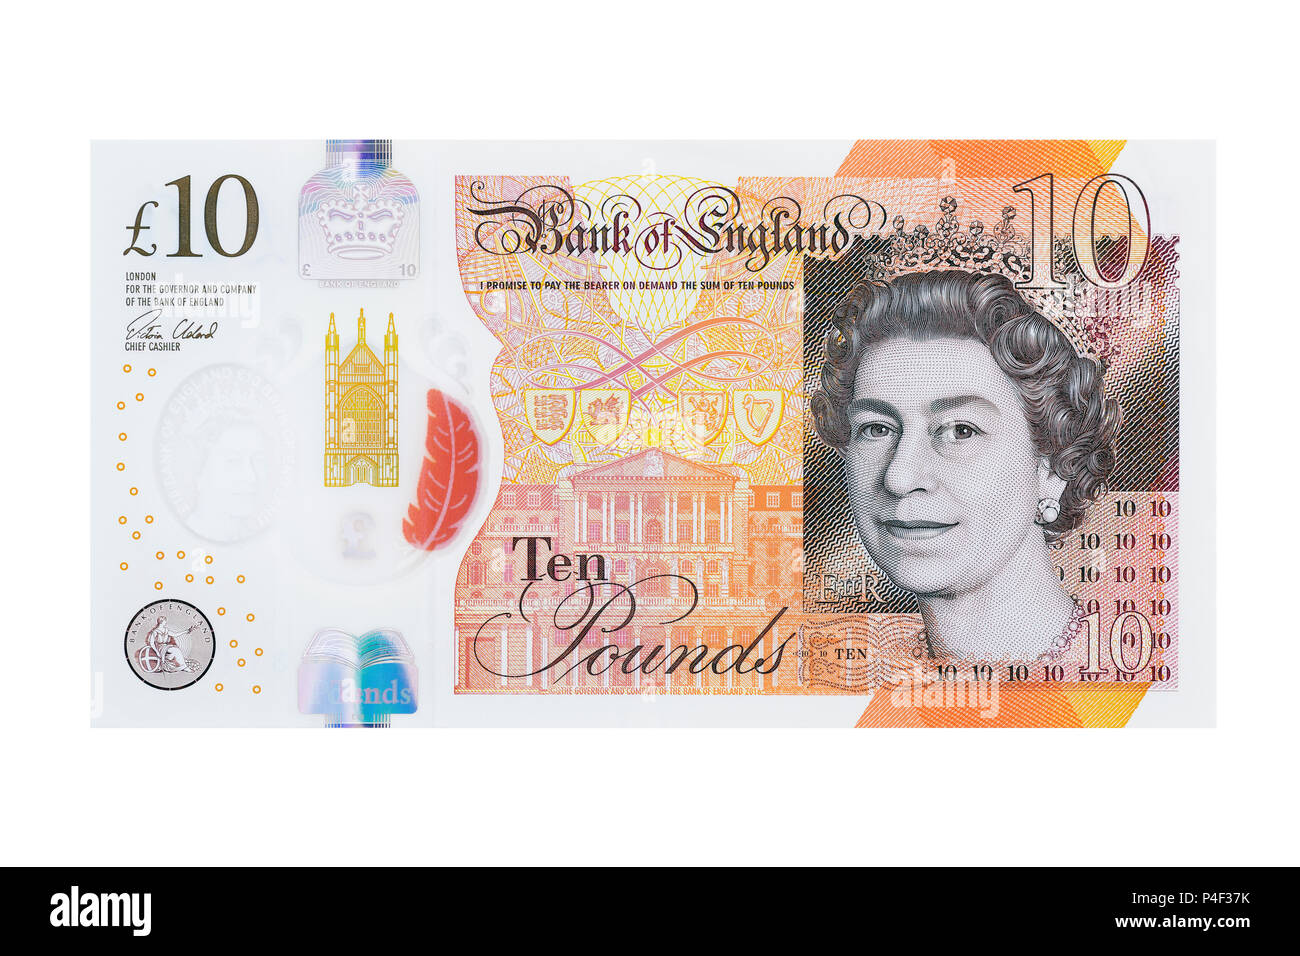 New Ten Pound Note, UK, Cut Out - Stock Image